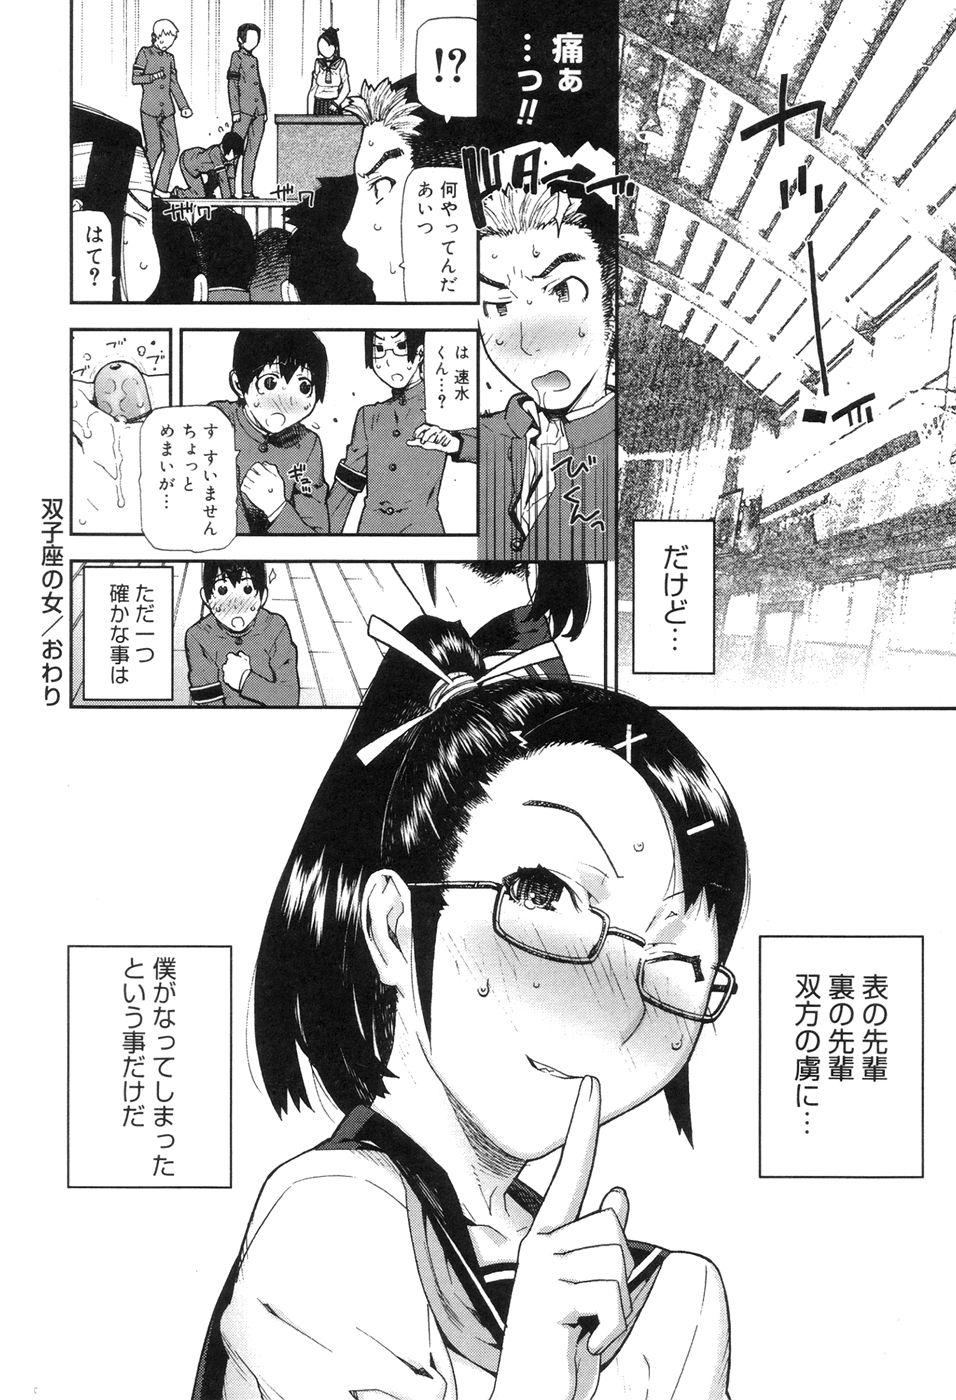 Onee-chan to issho 197